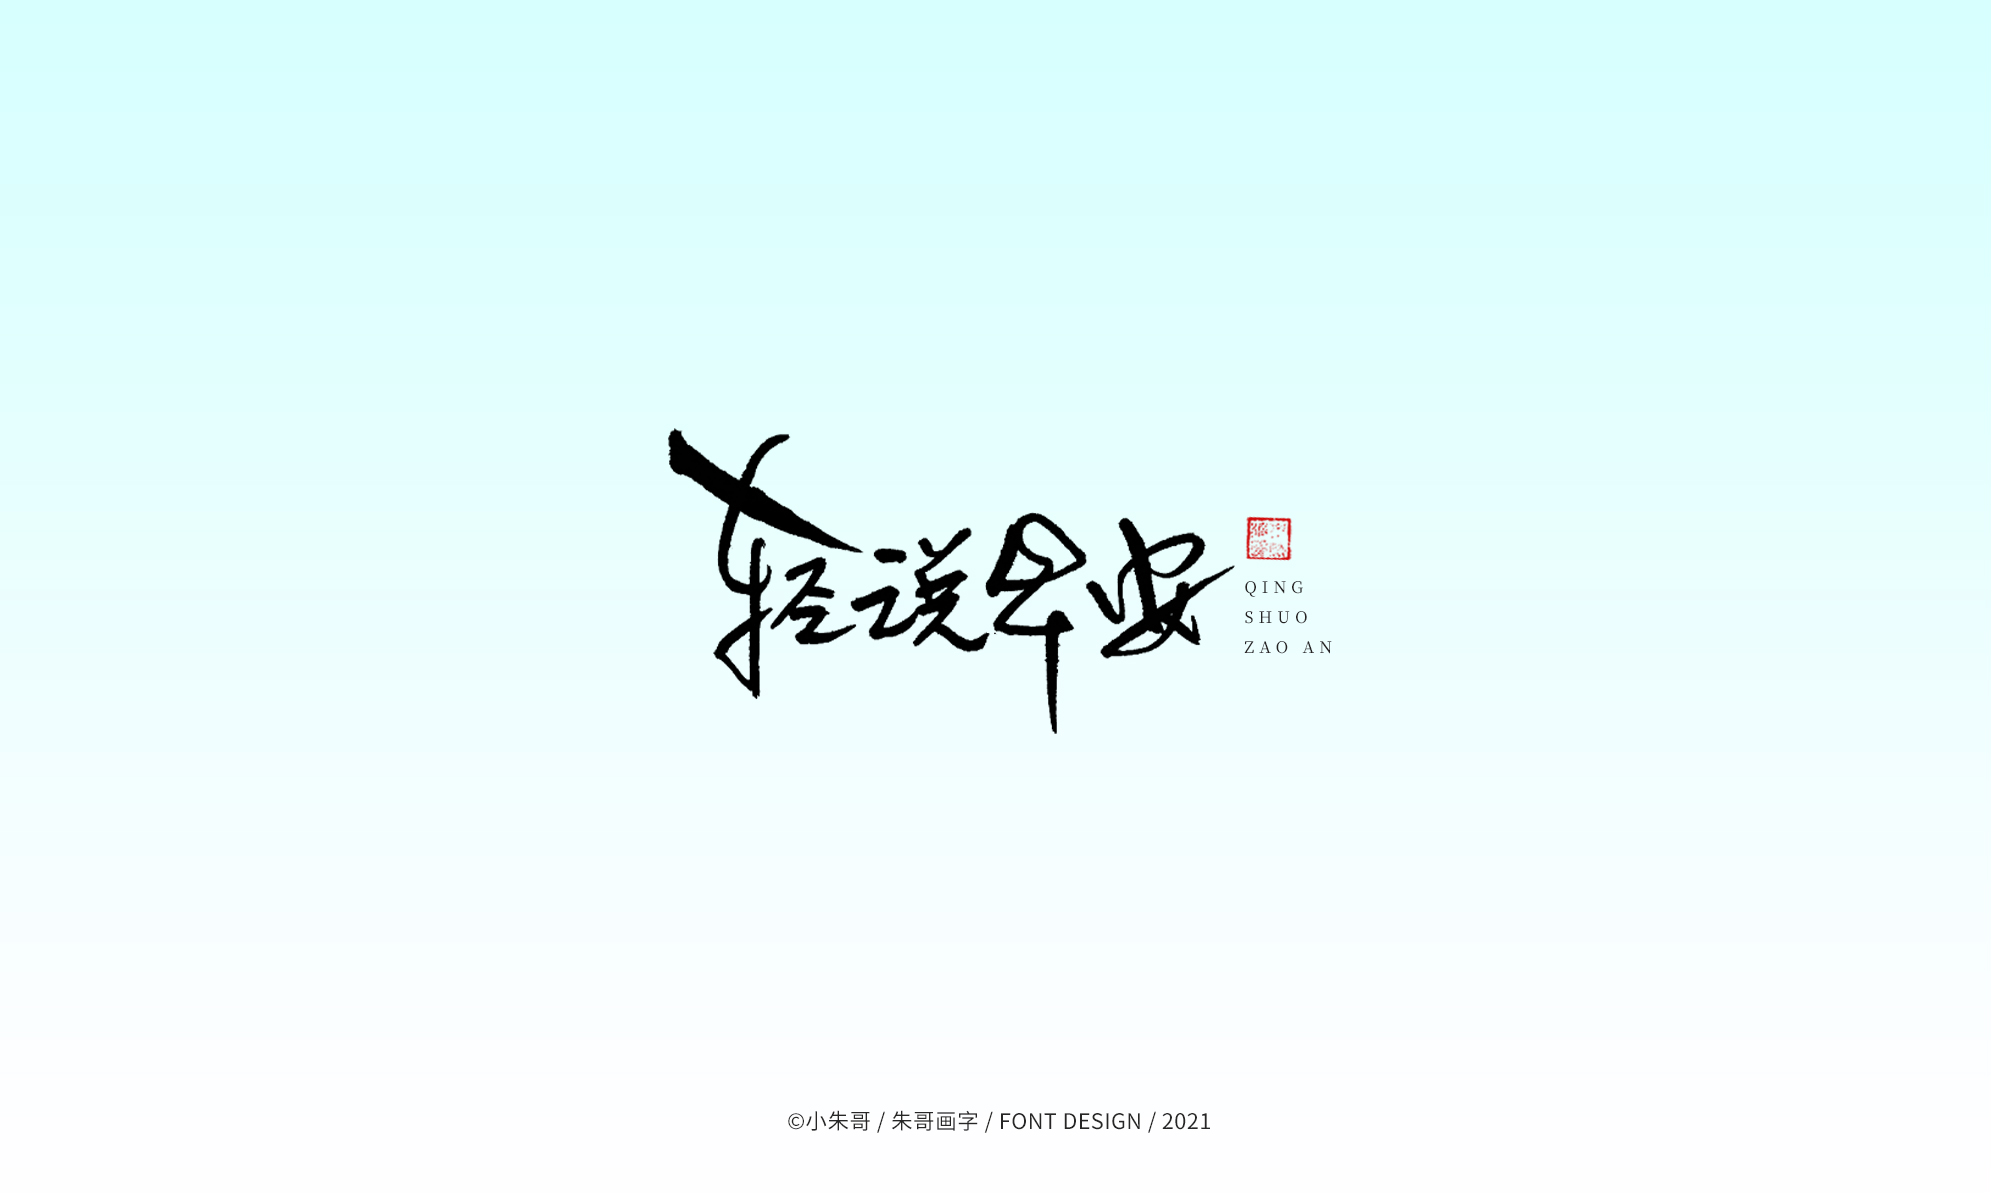 21P Collection of the latest Chinese font design schemes in 2021 #.20